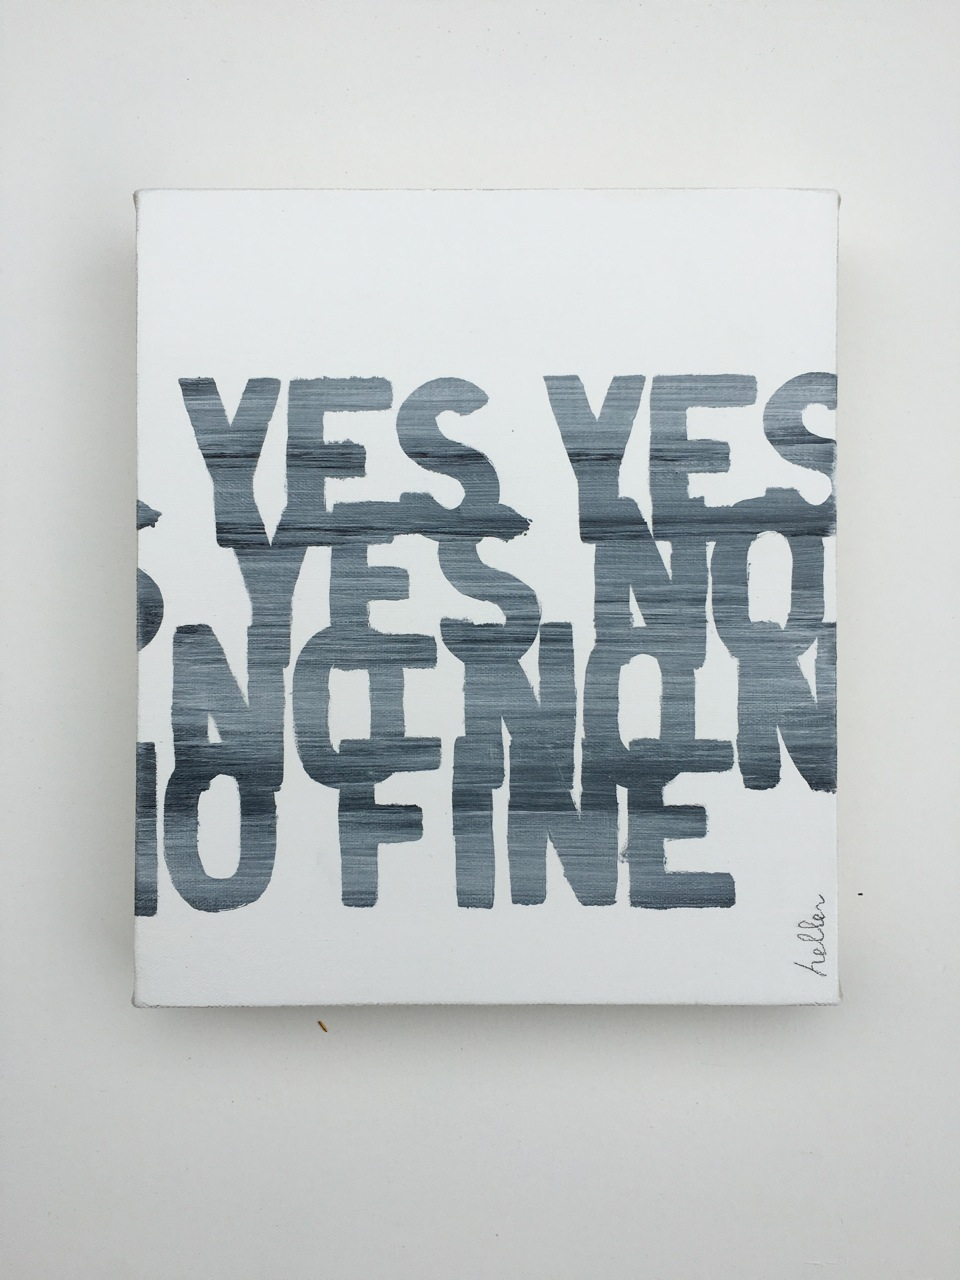 Matthew Heller,  Yes Yes Yes No No No Fine , 2016, Acrylic on canvas, 11 x 9.5 inches